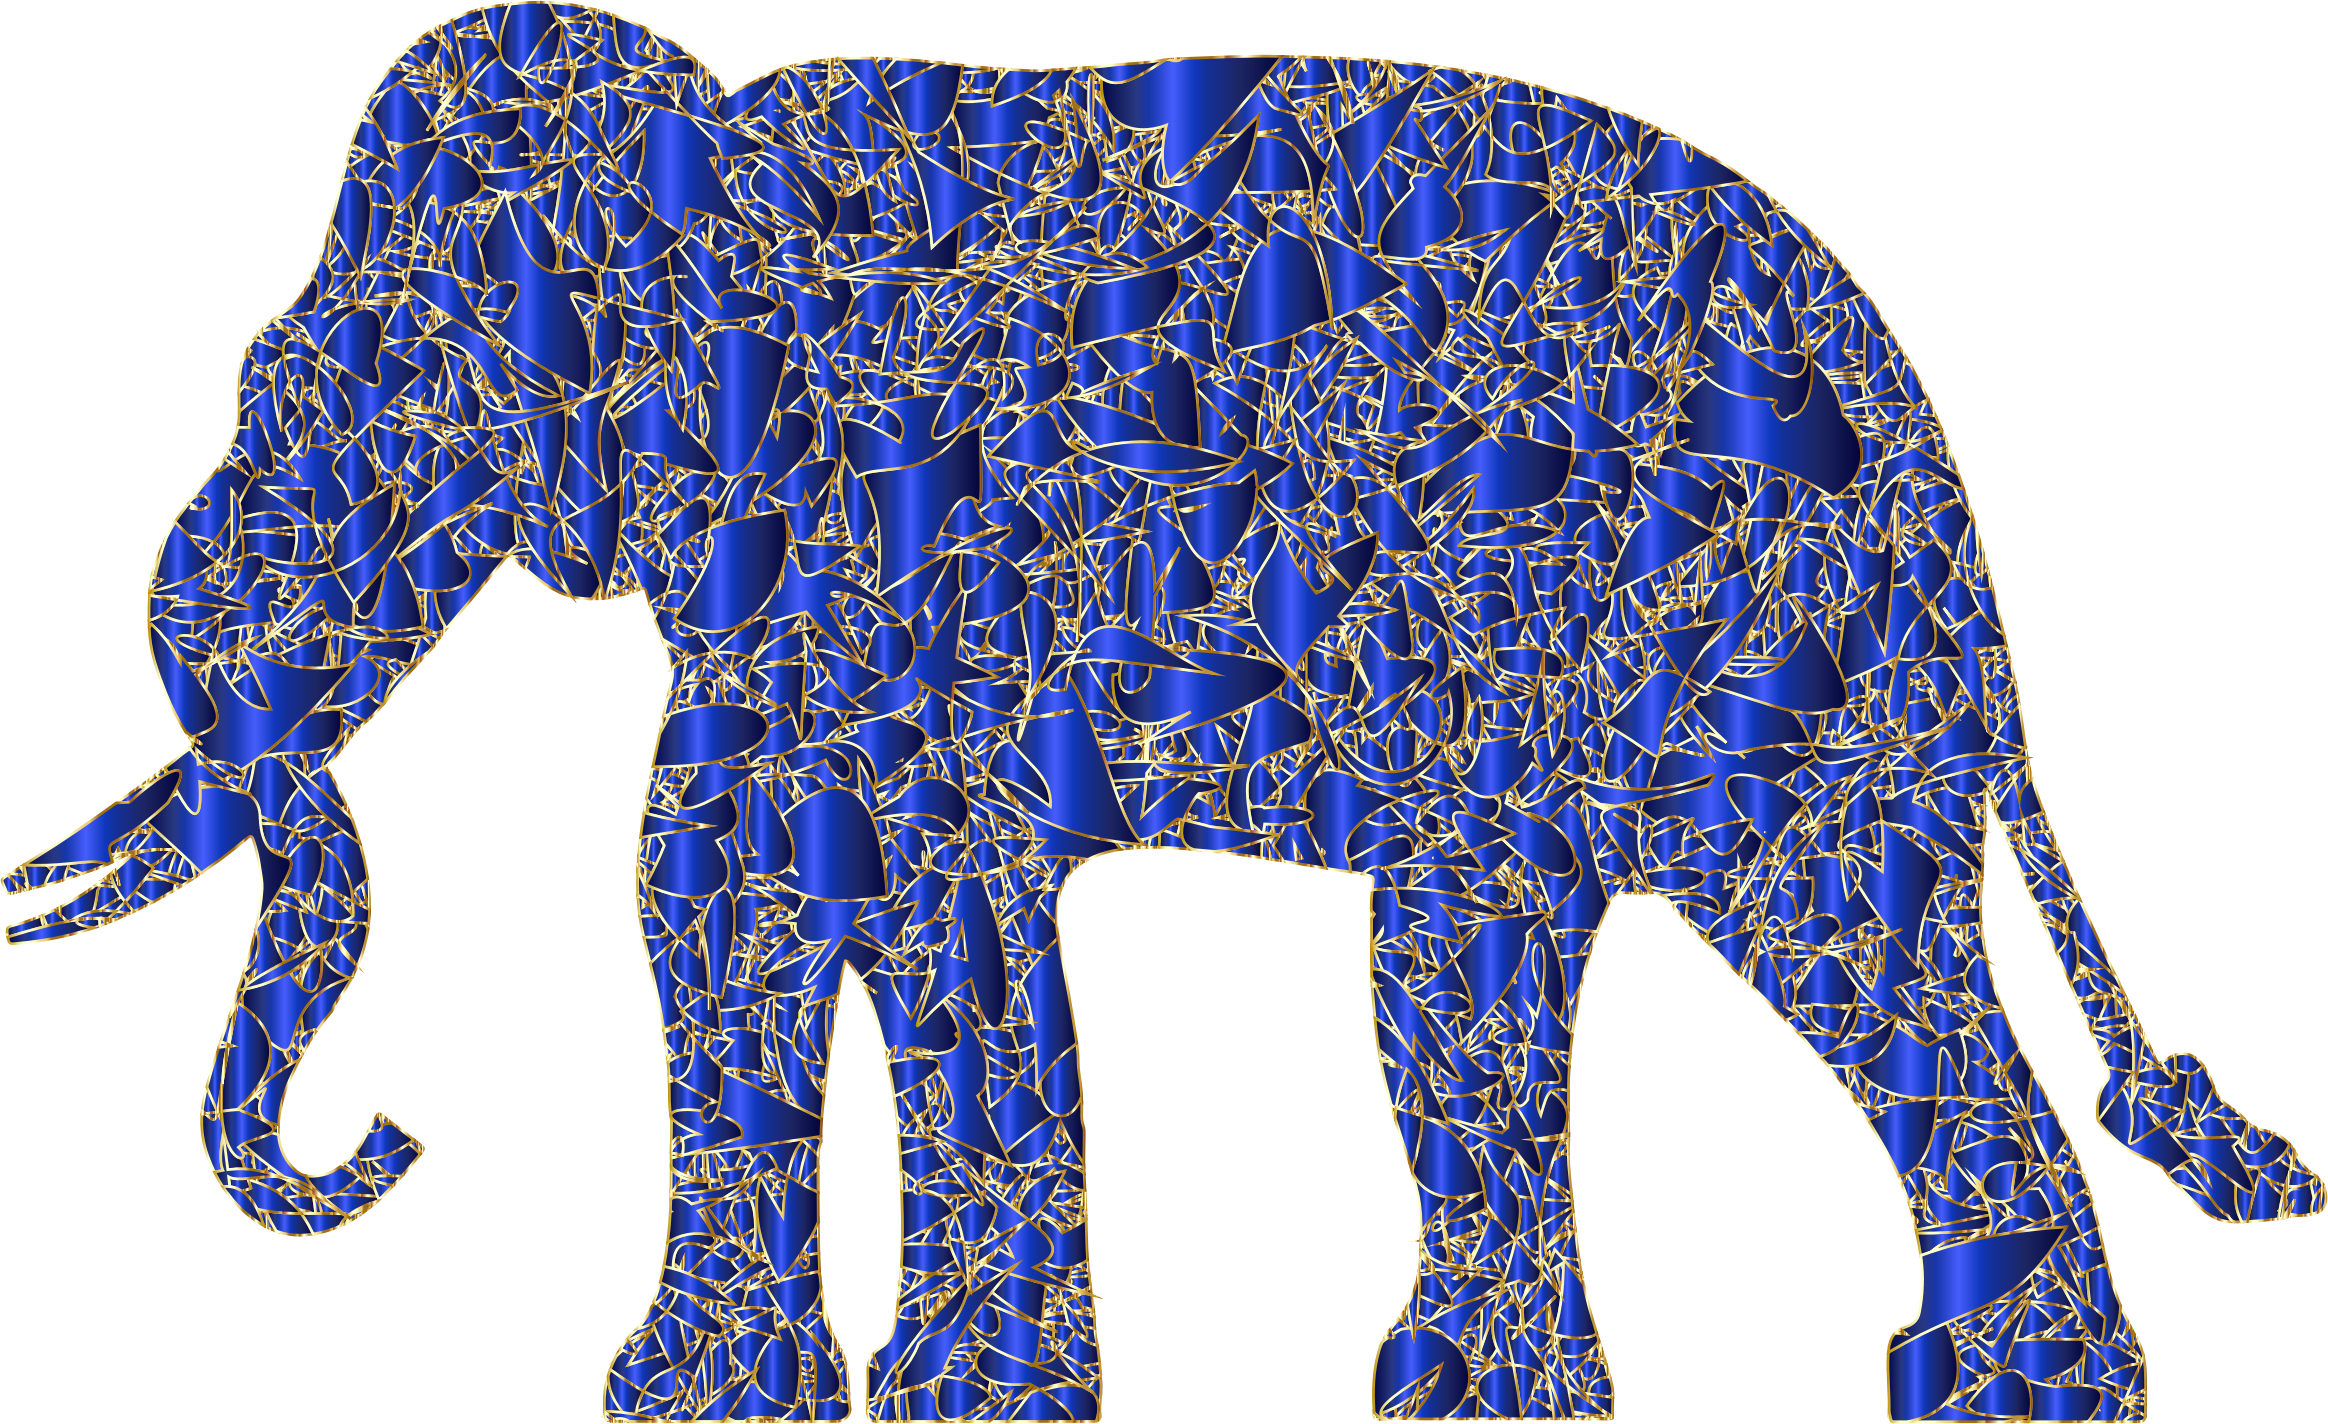 Modern Art Elephant Reactivated 5 by GDJ